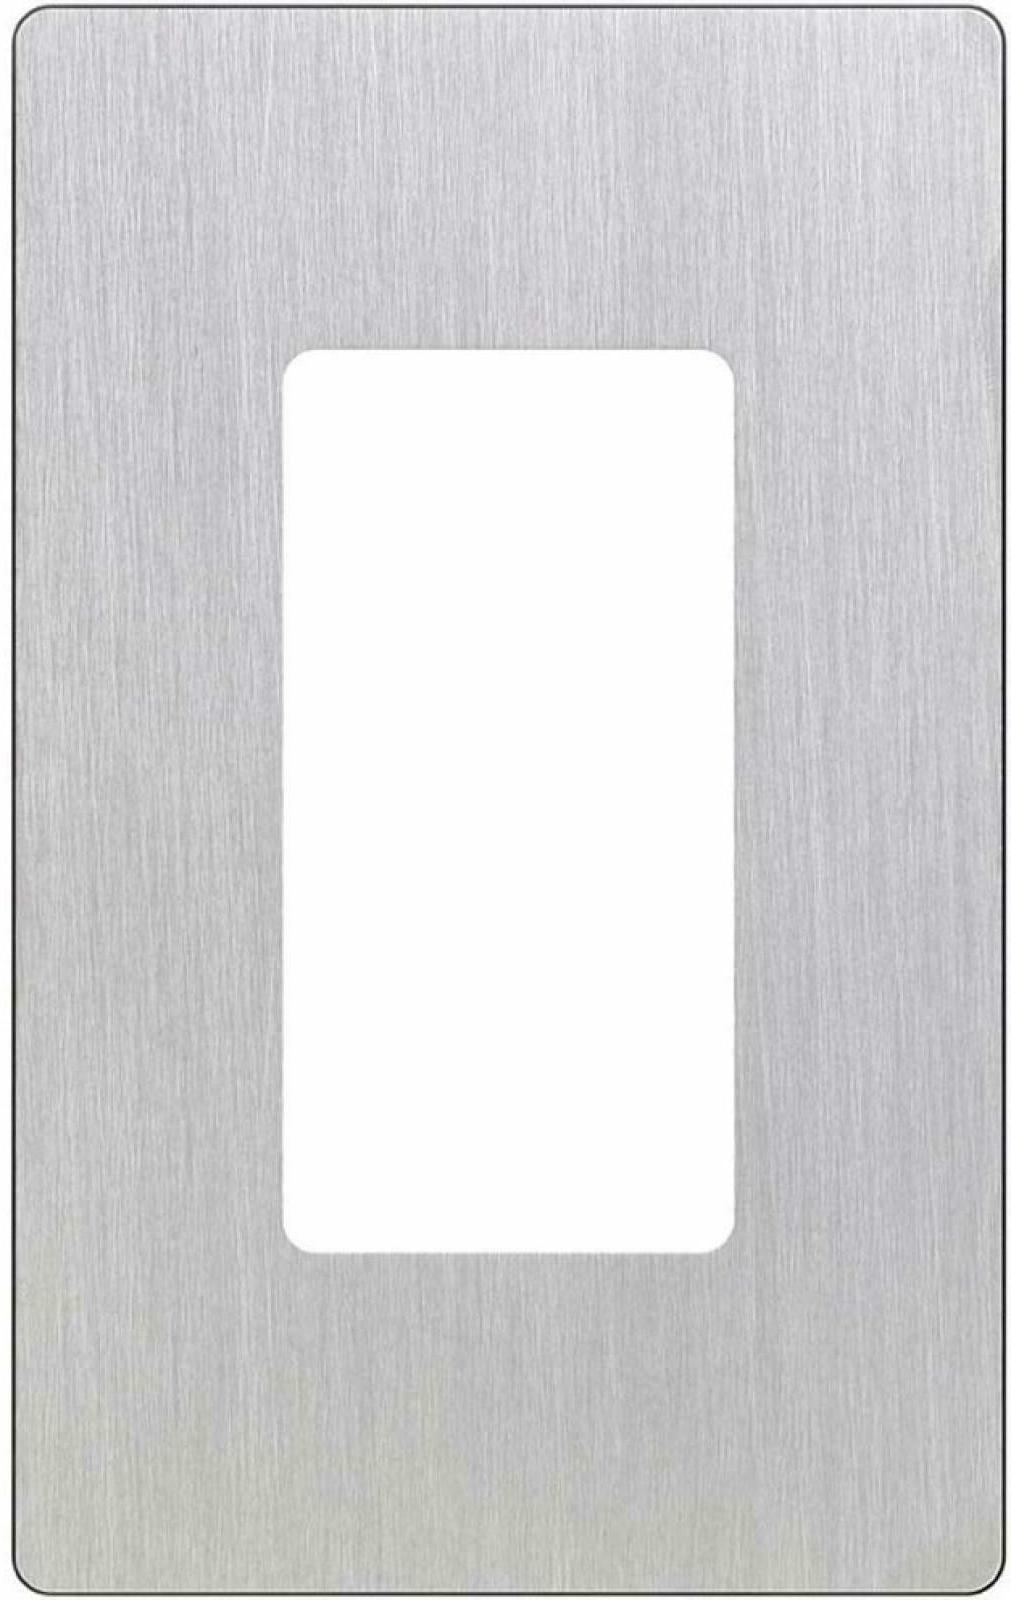 claro 1 gang decorator wallplate cw 1